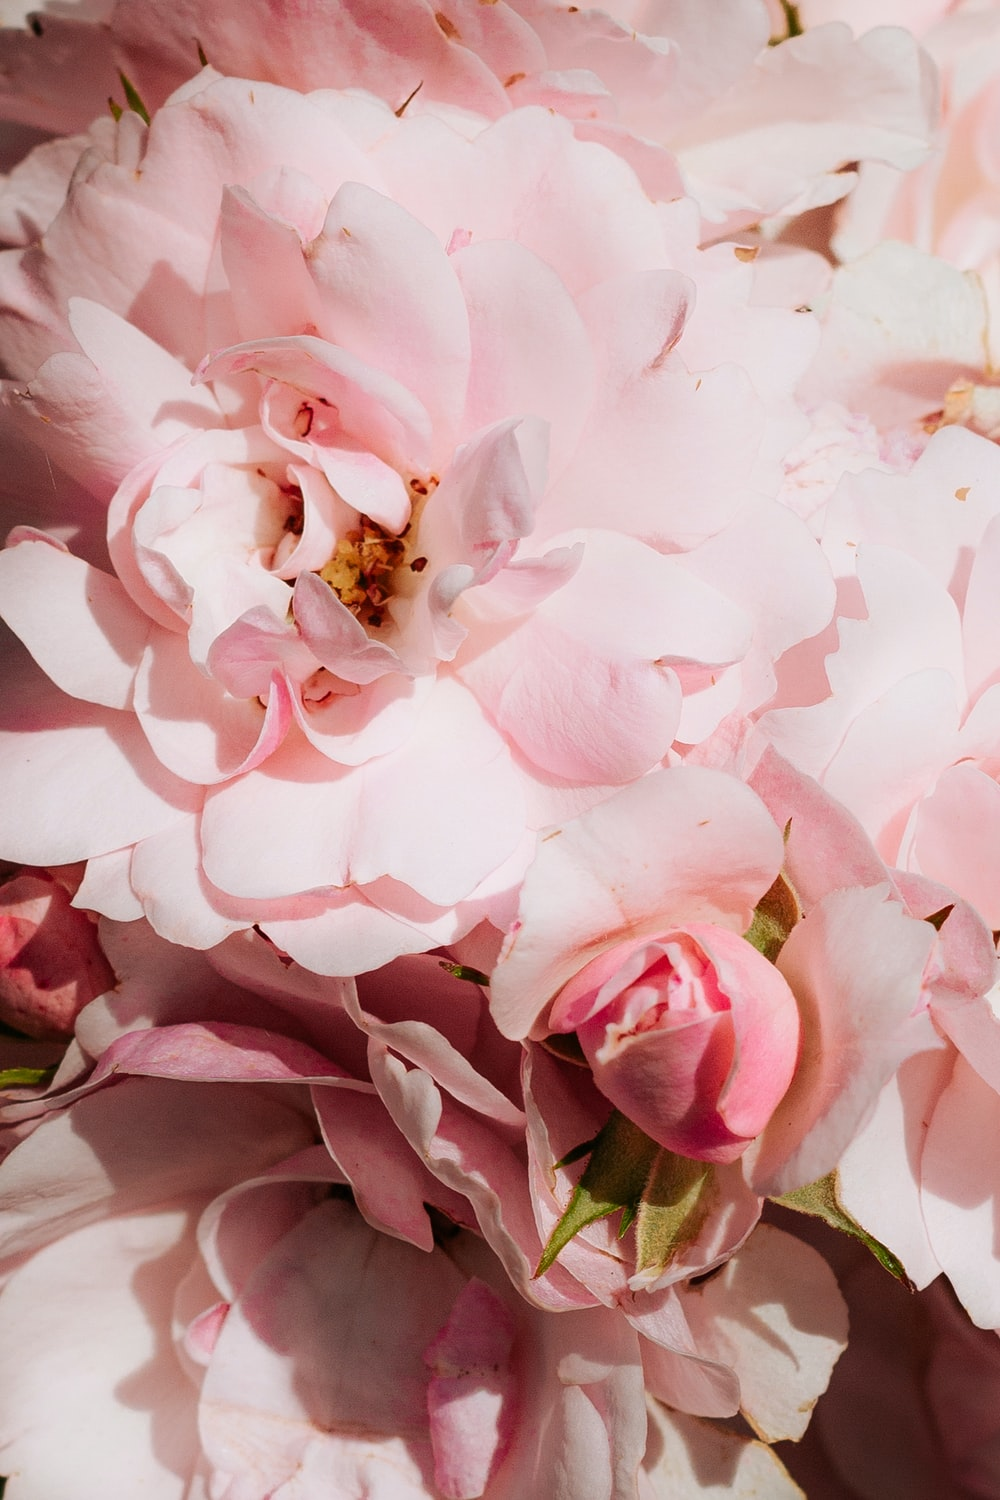 pink roses in bloom close up photo